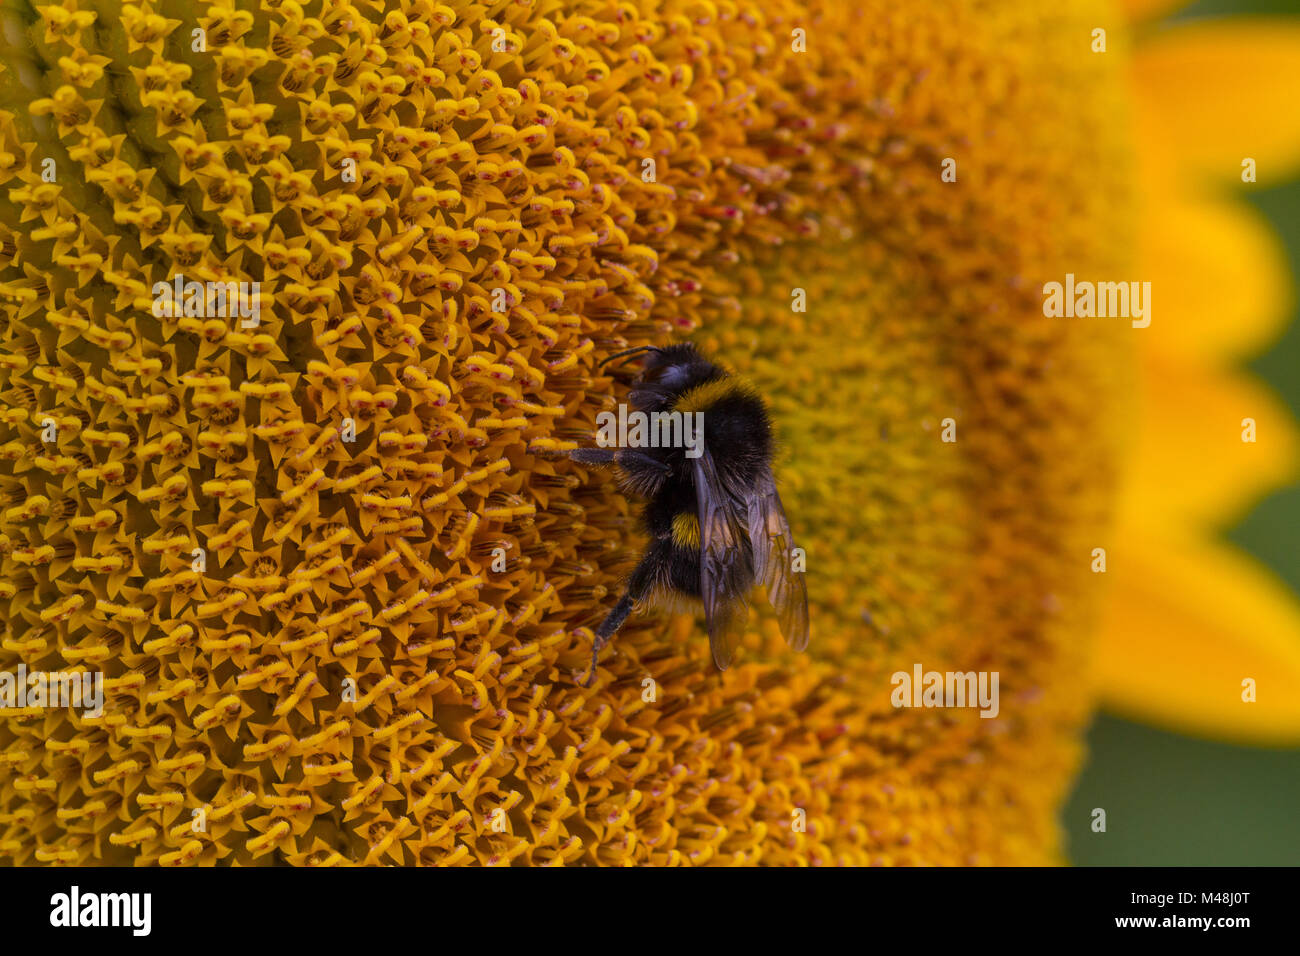 Detailed view of a bee on a Sunflower - Stock Image